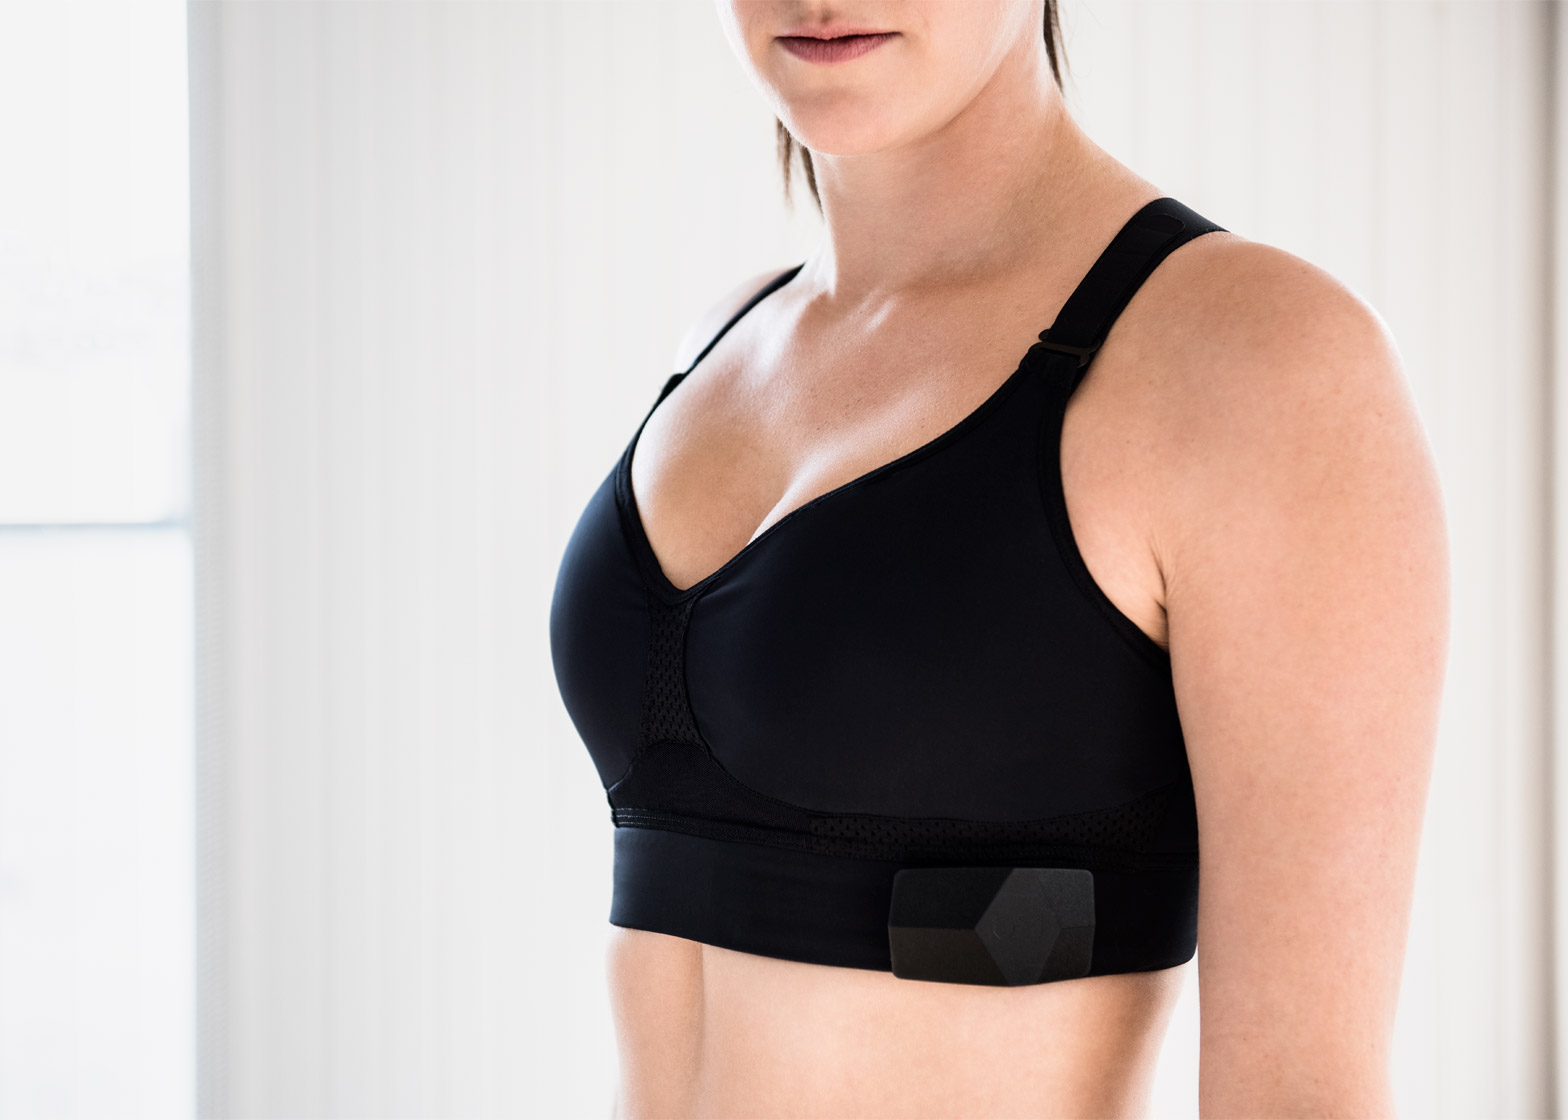 a65734561081b OMbra smart underwear gives instant workout feedback